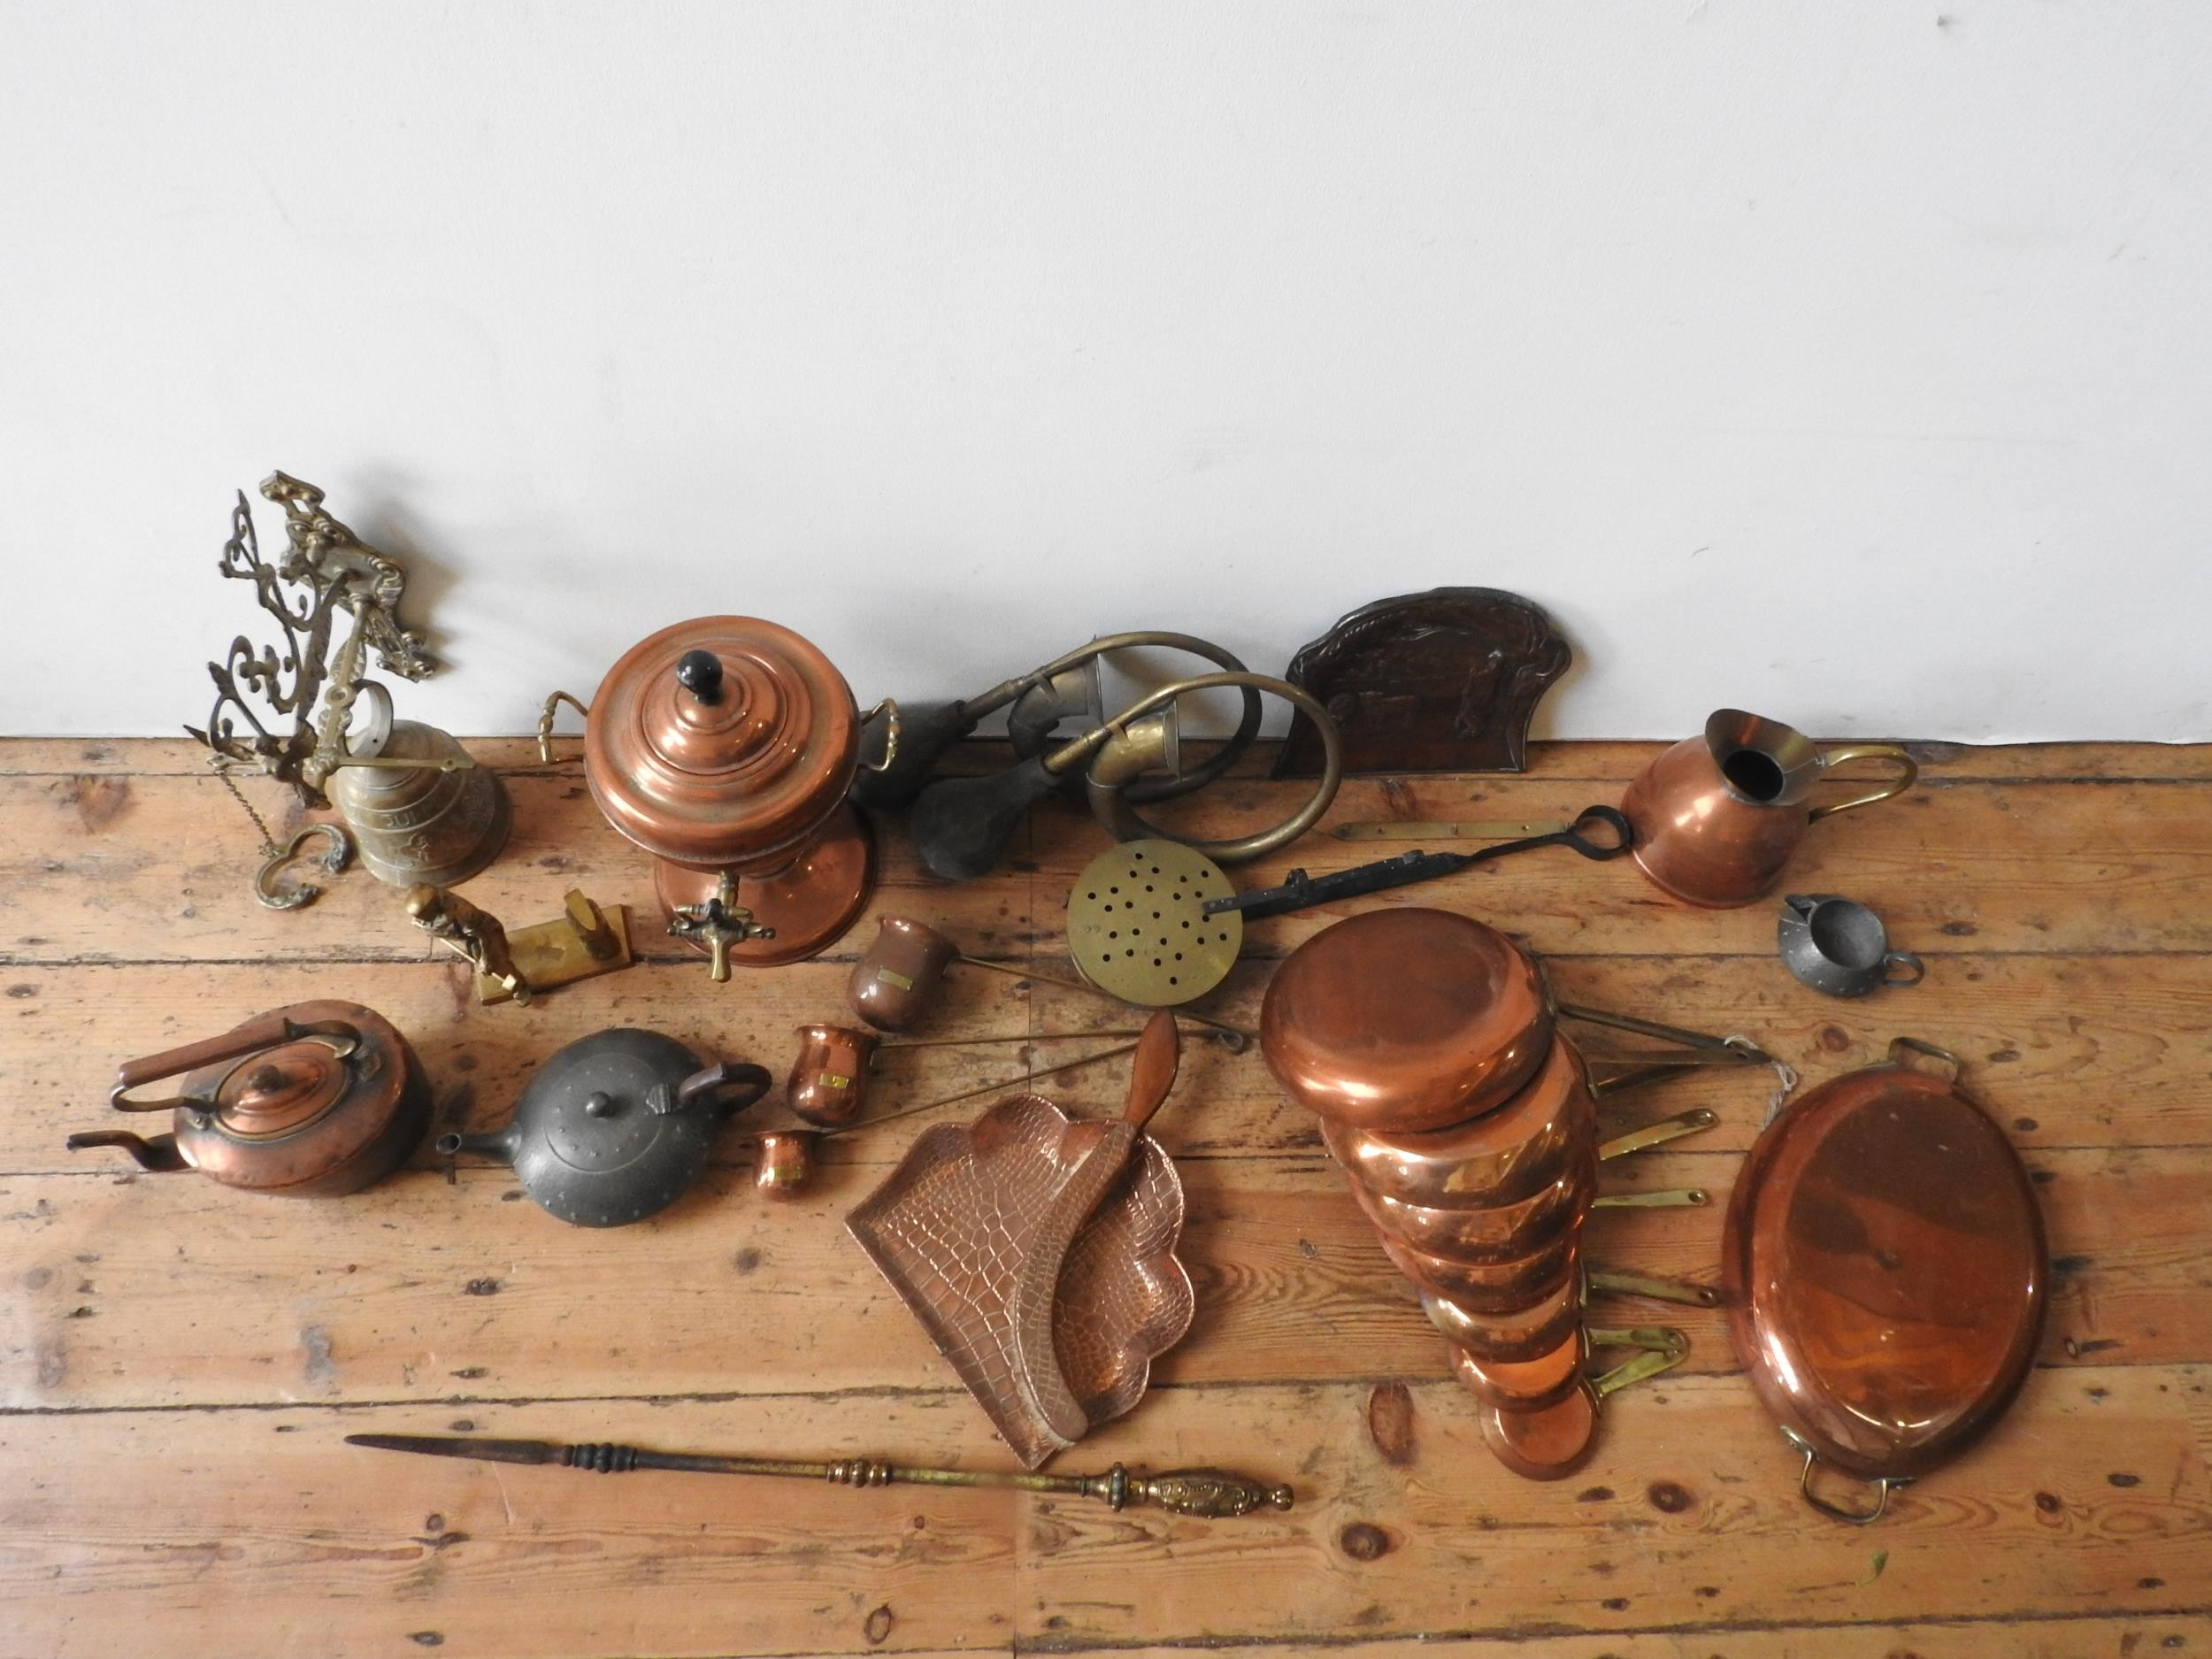 VICTORIAN COPPER KETTLE, SAMOVAR AND BRASS WARE, - Image 2 of 3